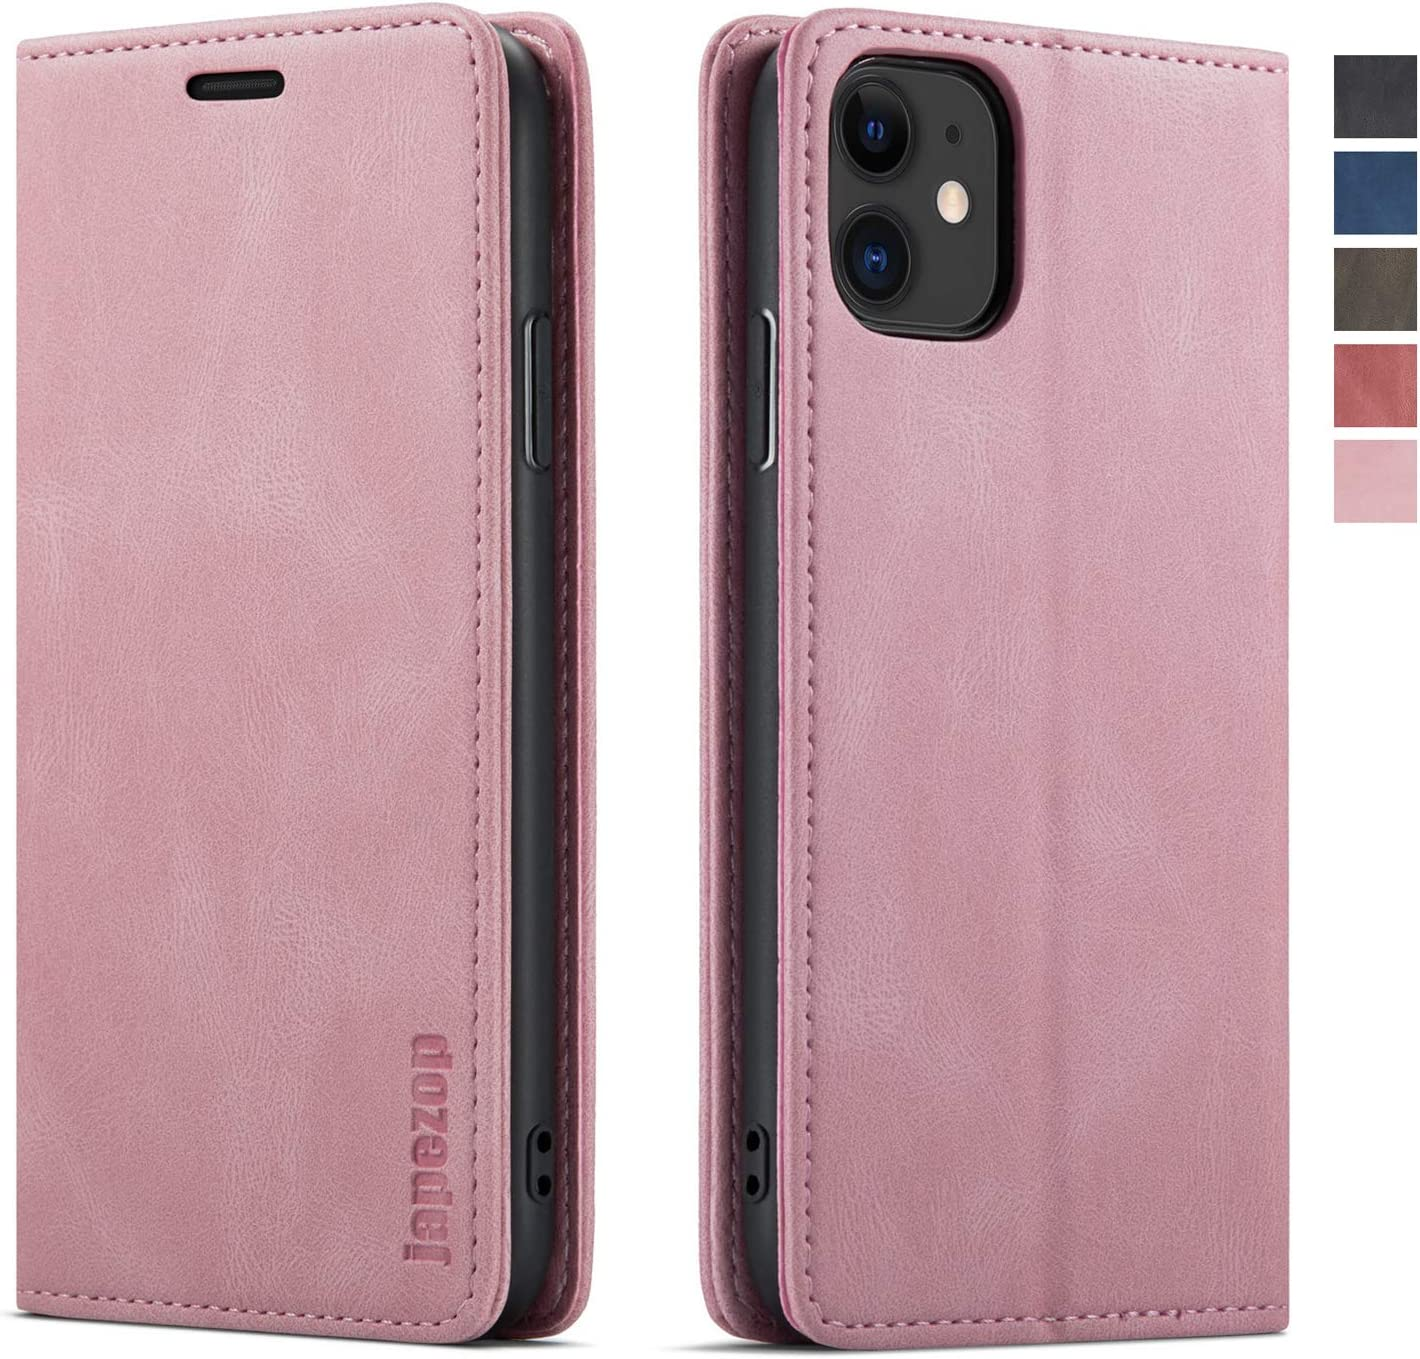 iPhone 11 Case,iPhone 11 Case Wallet for Women with[RFID Blocking] Card Holder Kickstand, Leather Flip Wallet Case for iPhone 11 6.1 inch (Pink)